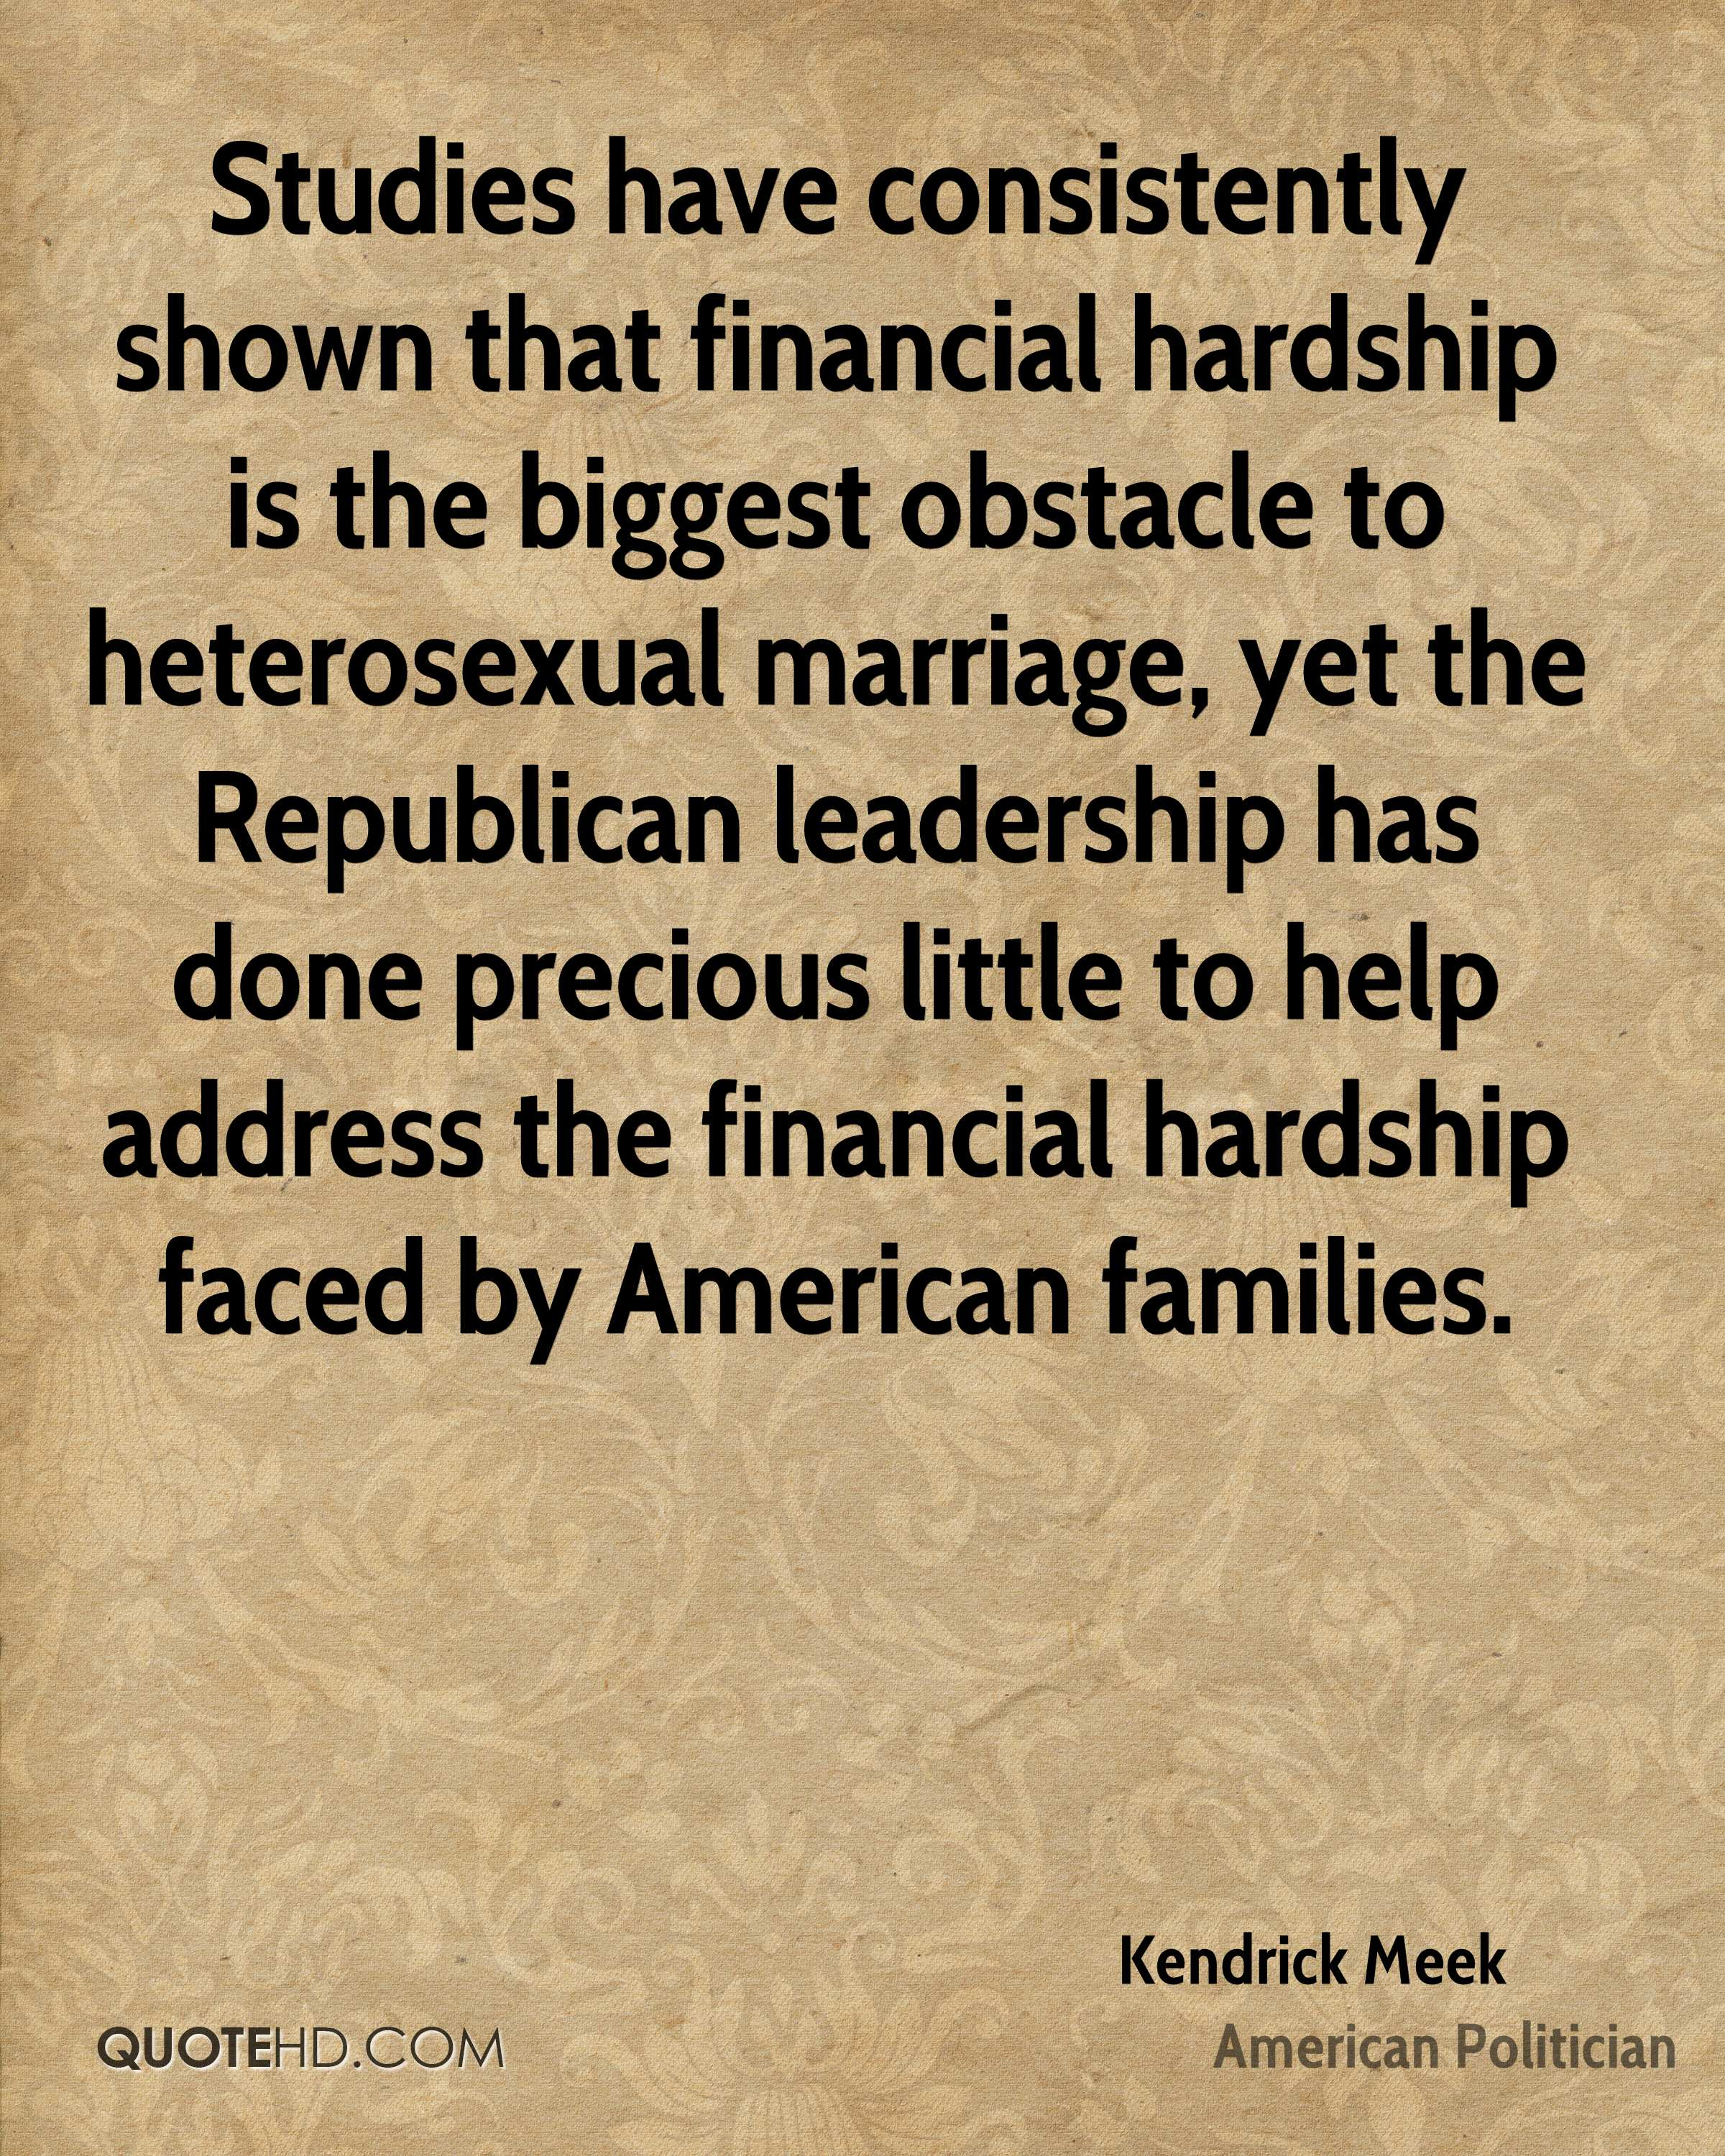 Studies have consistently shown that financial hardship is the biggest obstacle to heterosexual marriage, yet the Republican leadership has done precious little to help address the financial hardship faced by American families.